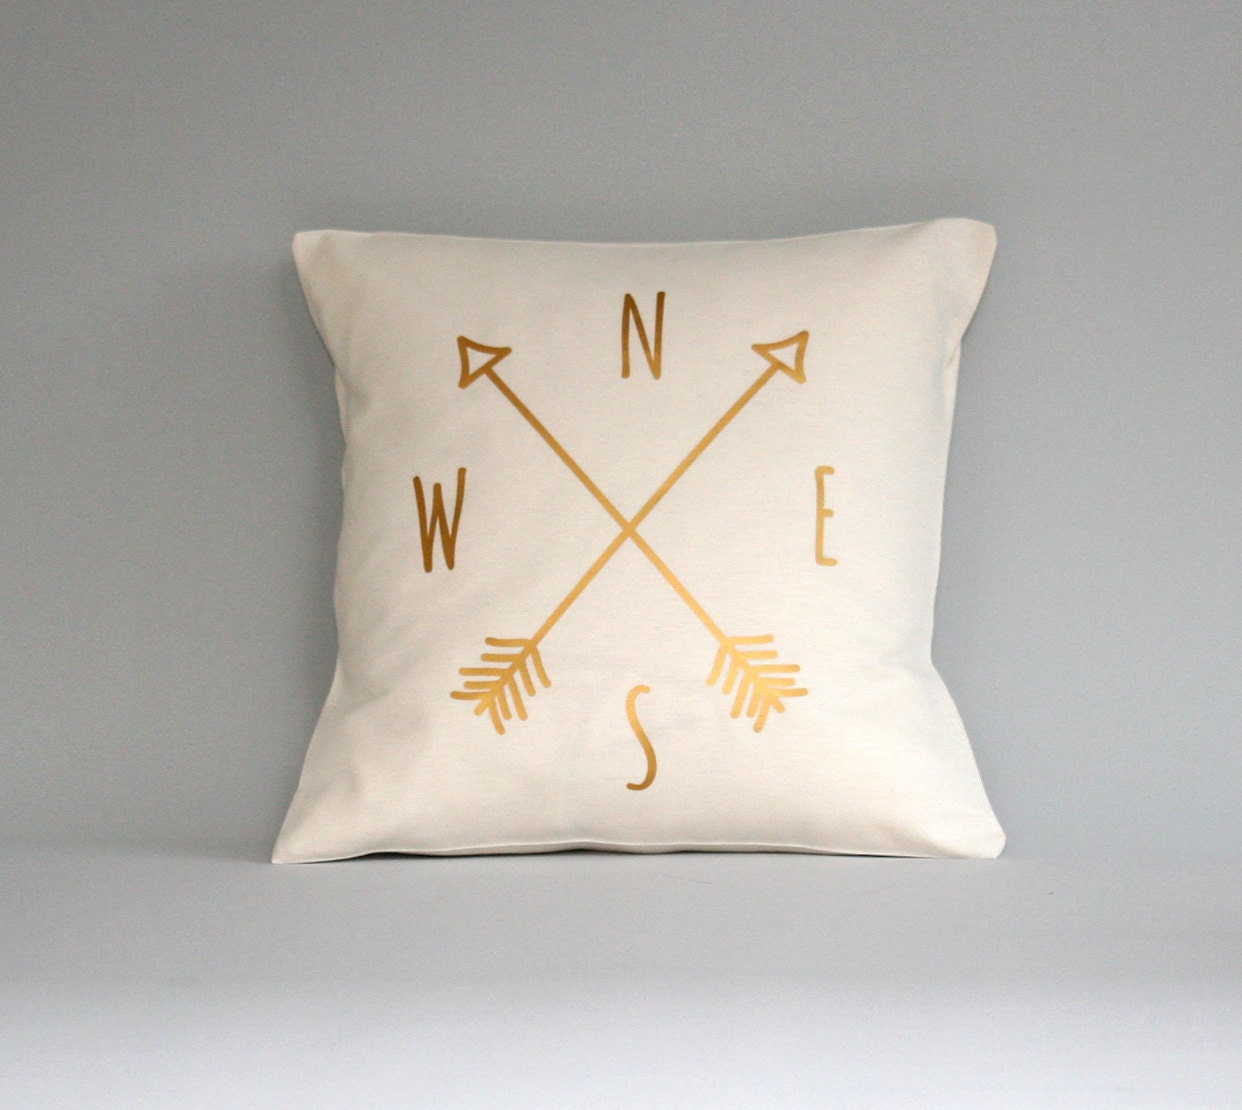 compass pillow cover gold pillow compass cushion throw pillow metallic gold pillows - Gold Decorative Pillows